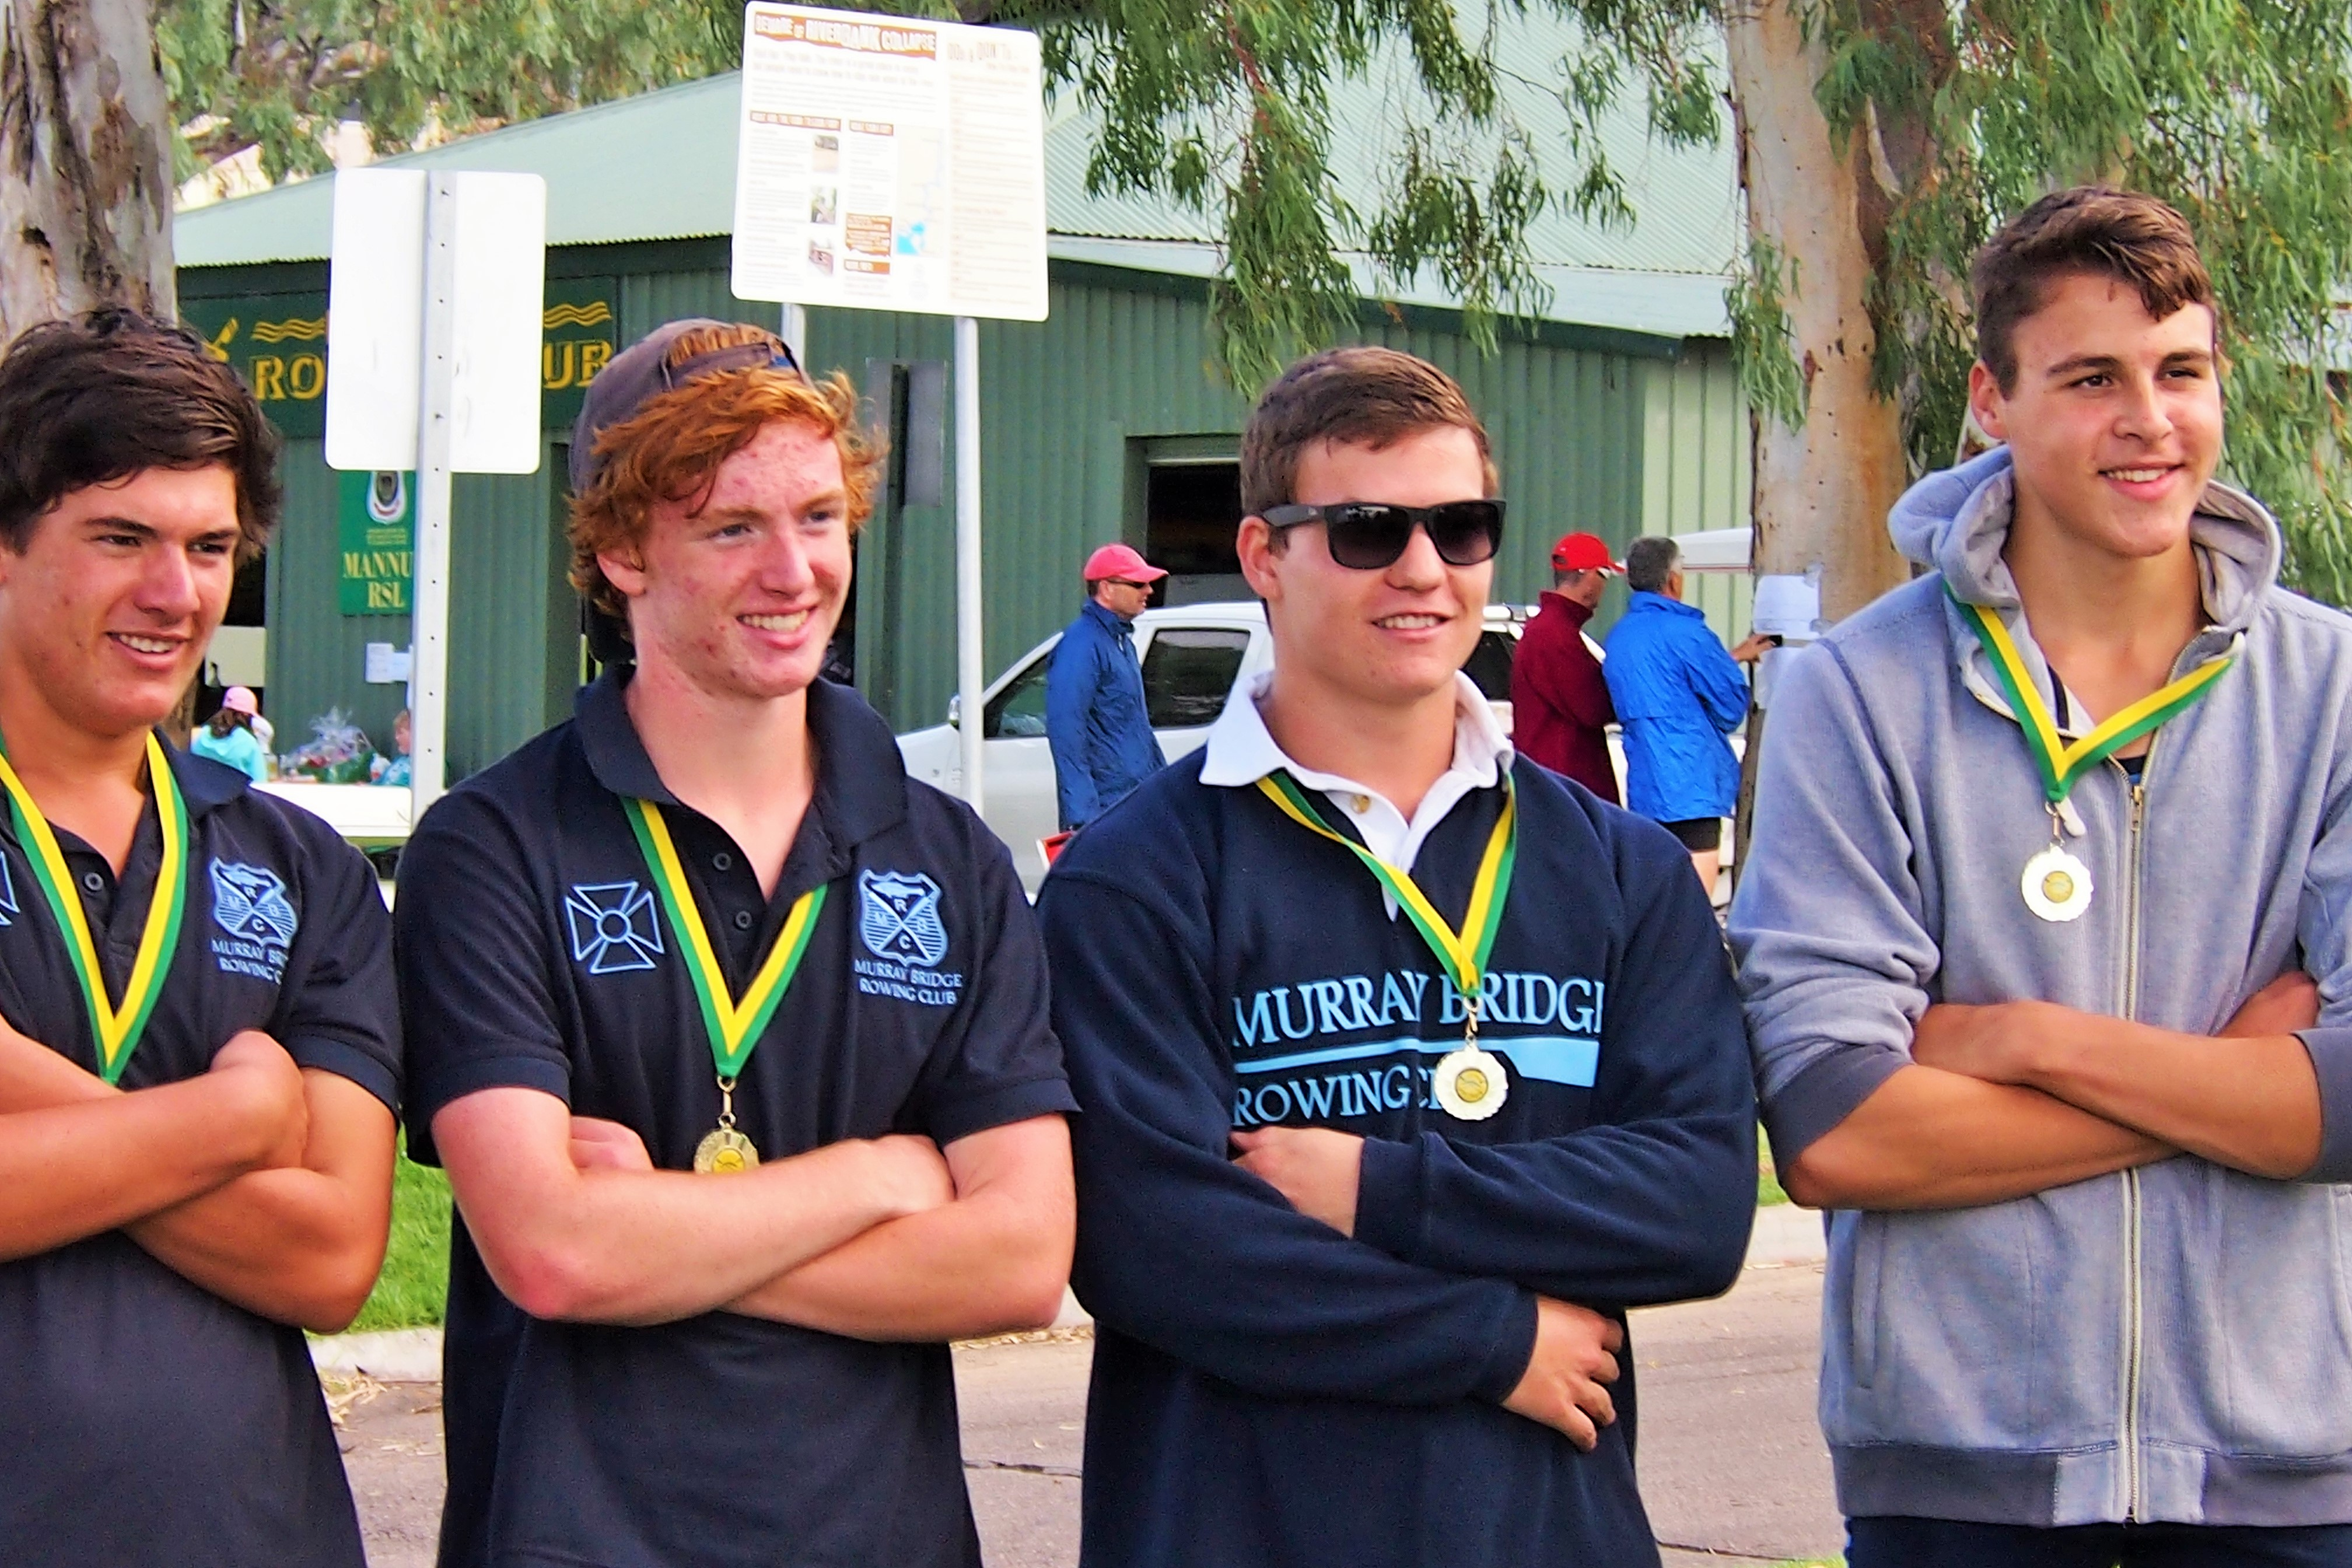 (left to right) Jayden Thomson, Hayden Teunissen, Gareth McFadzean & Liam Altschwager after their wonderful win in the 3rd grade mens quad. This was also Liam's first race and win.